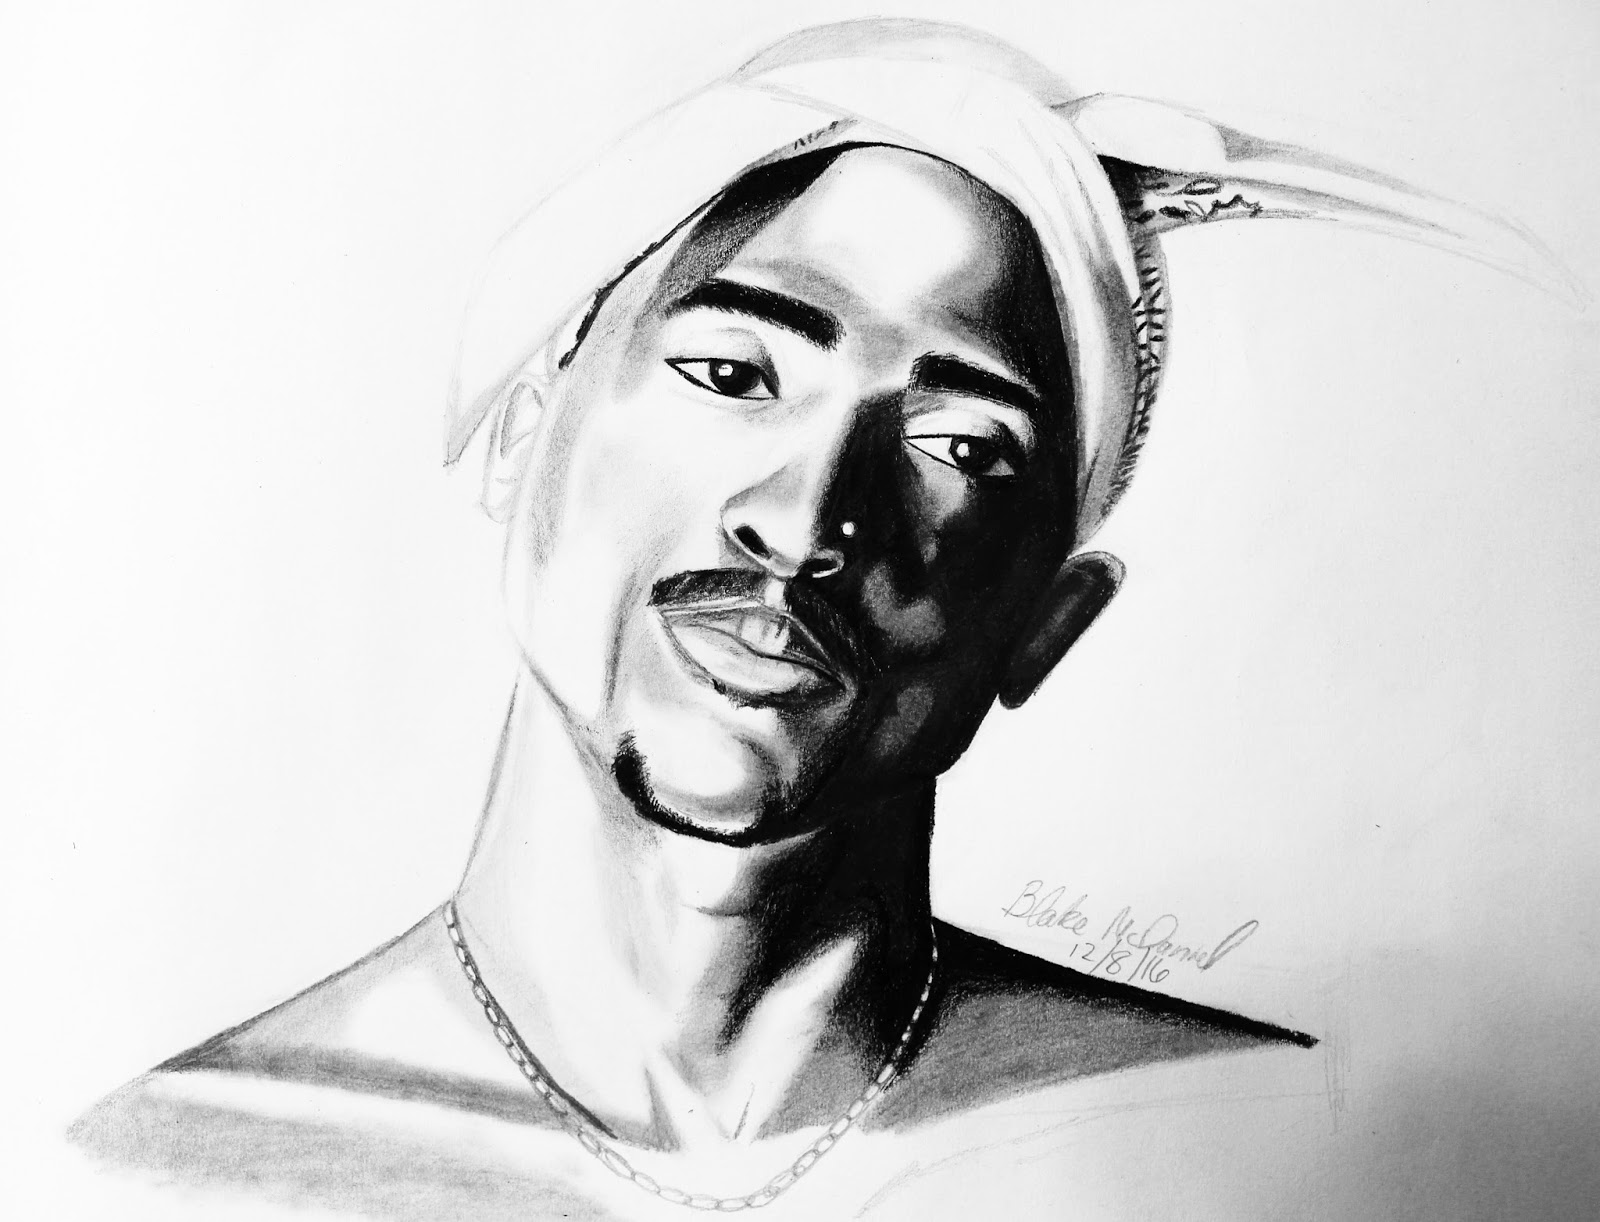 The Life of ART: Drawing of Tupac